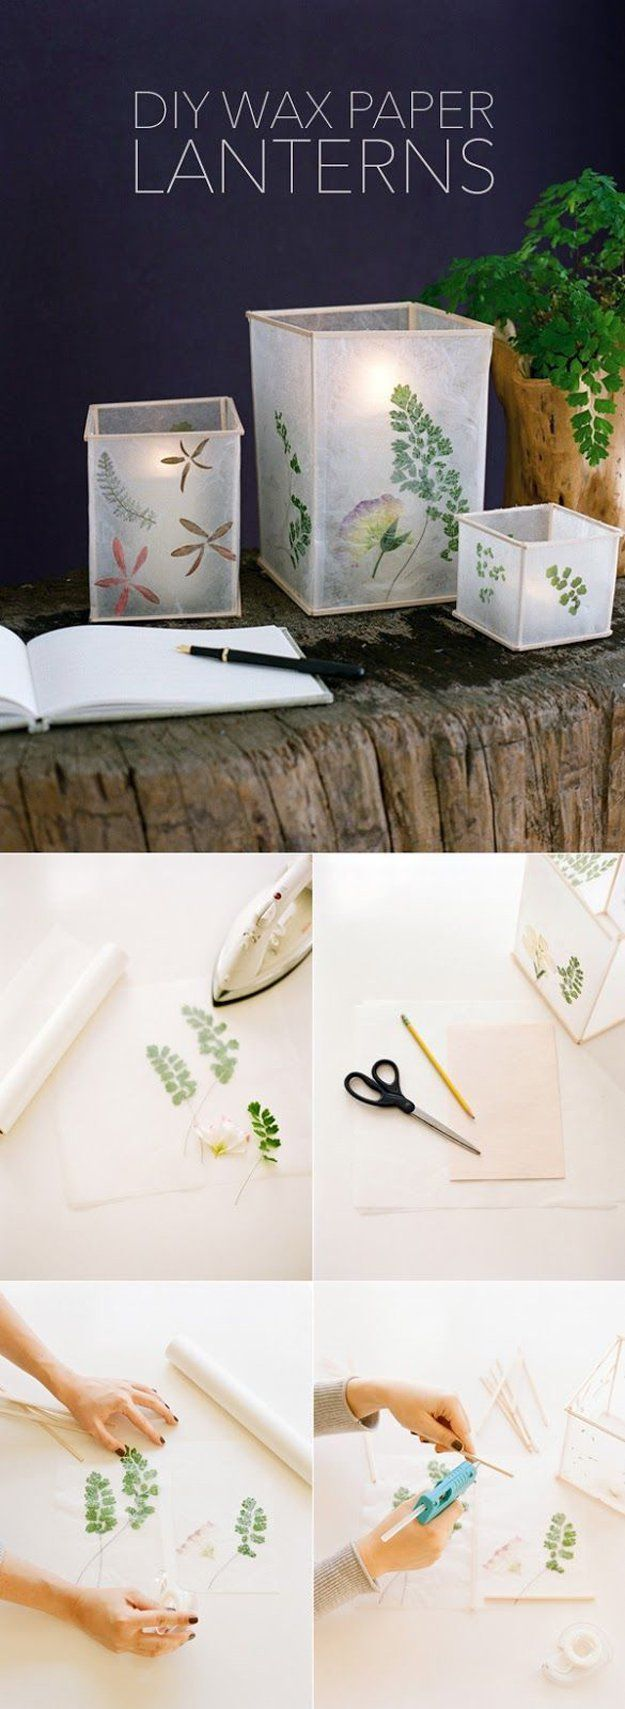 DIY Outdoor Lights Lantern Crafts | Wax Paper Lanterns by DIY Ready at http://diyready.com/21-diy-outdoor-lantern-ideas/